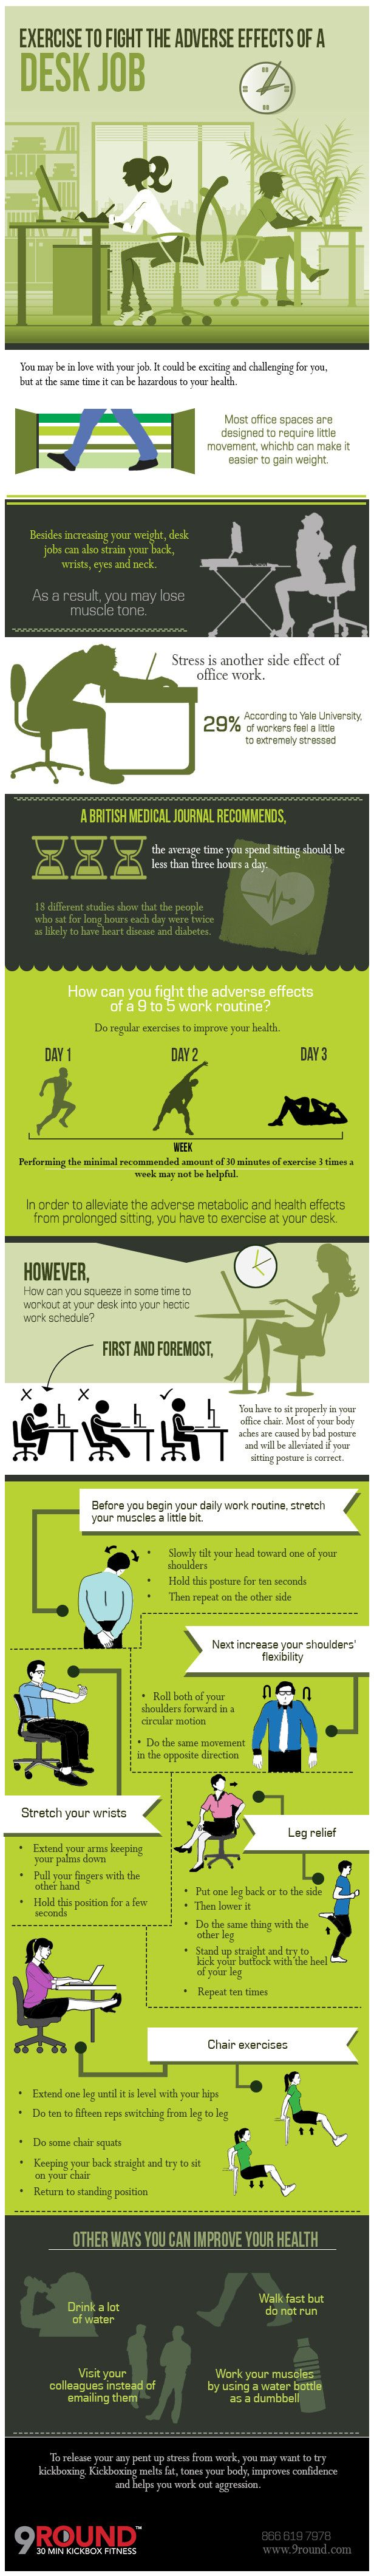 Infographic: Exercise to Fight the Adverse Effects of a Desk Job #infographic